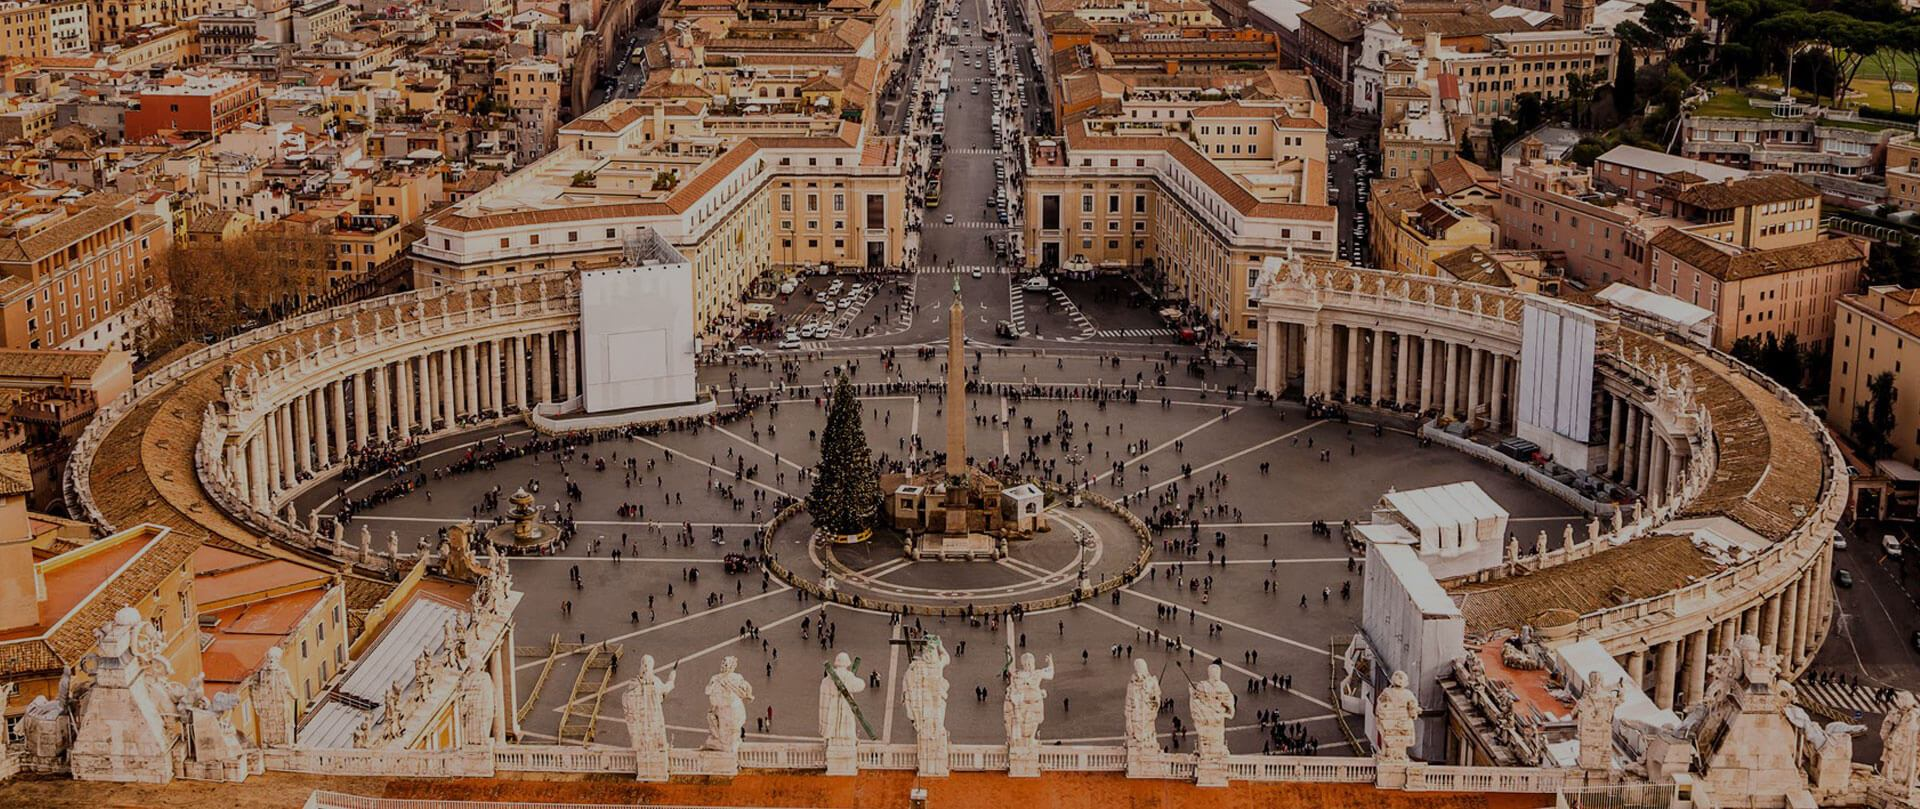 Vatican City & Rome Tour